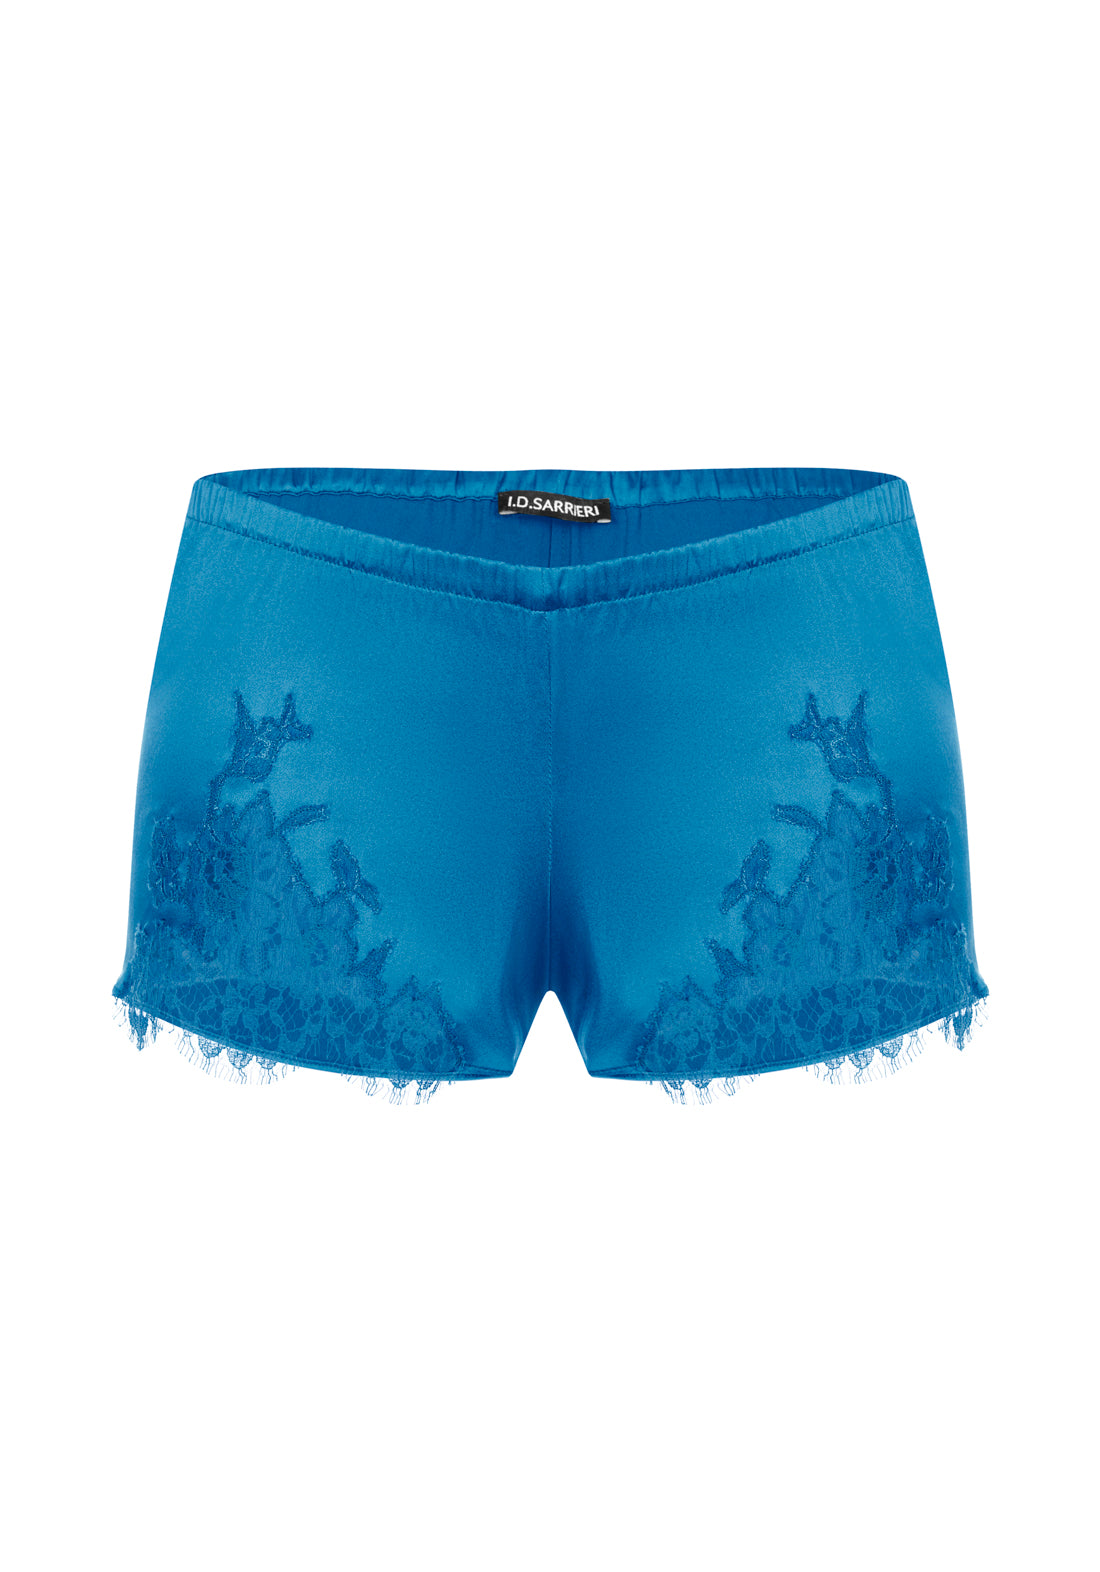 East of Eden Silk Shorts in Indian Blue